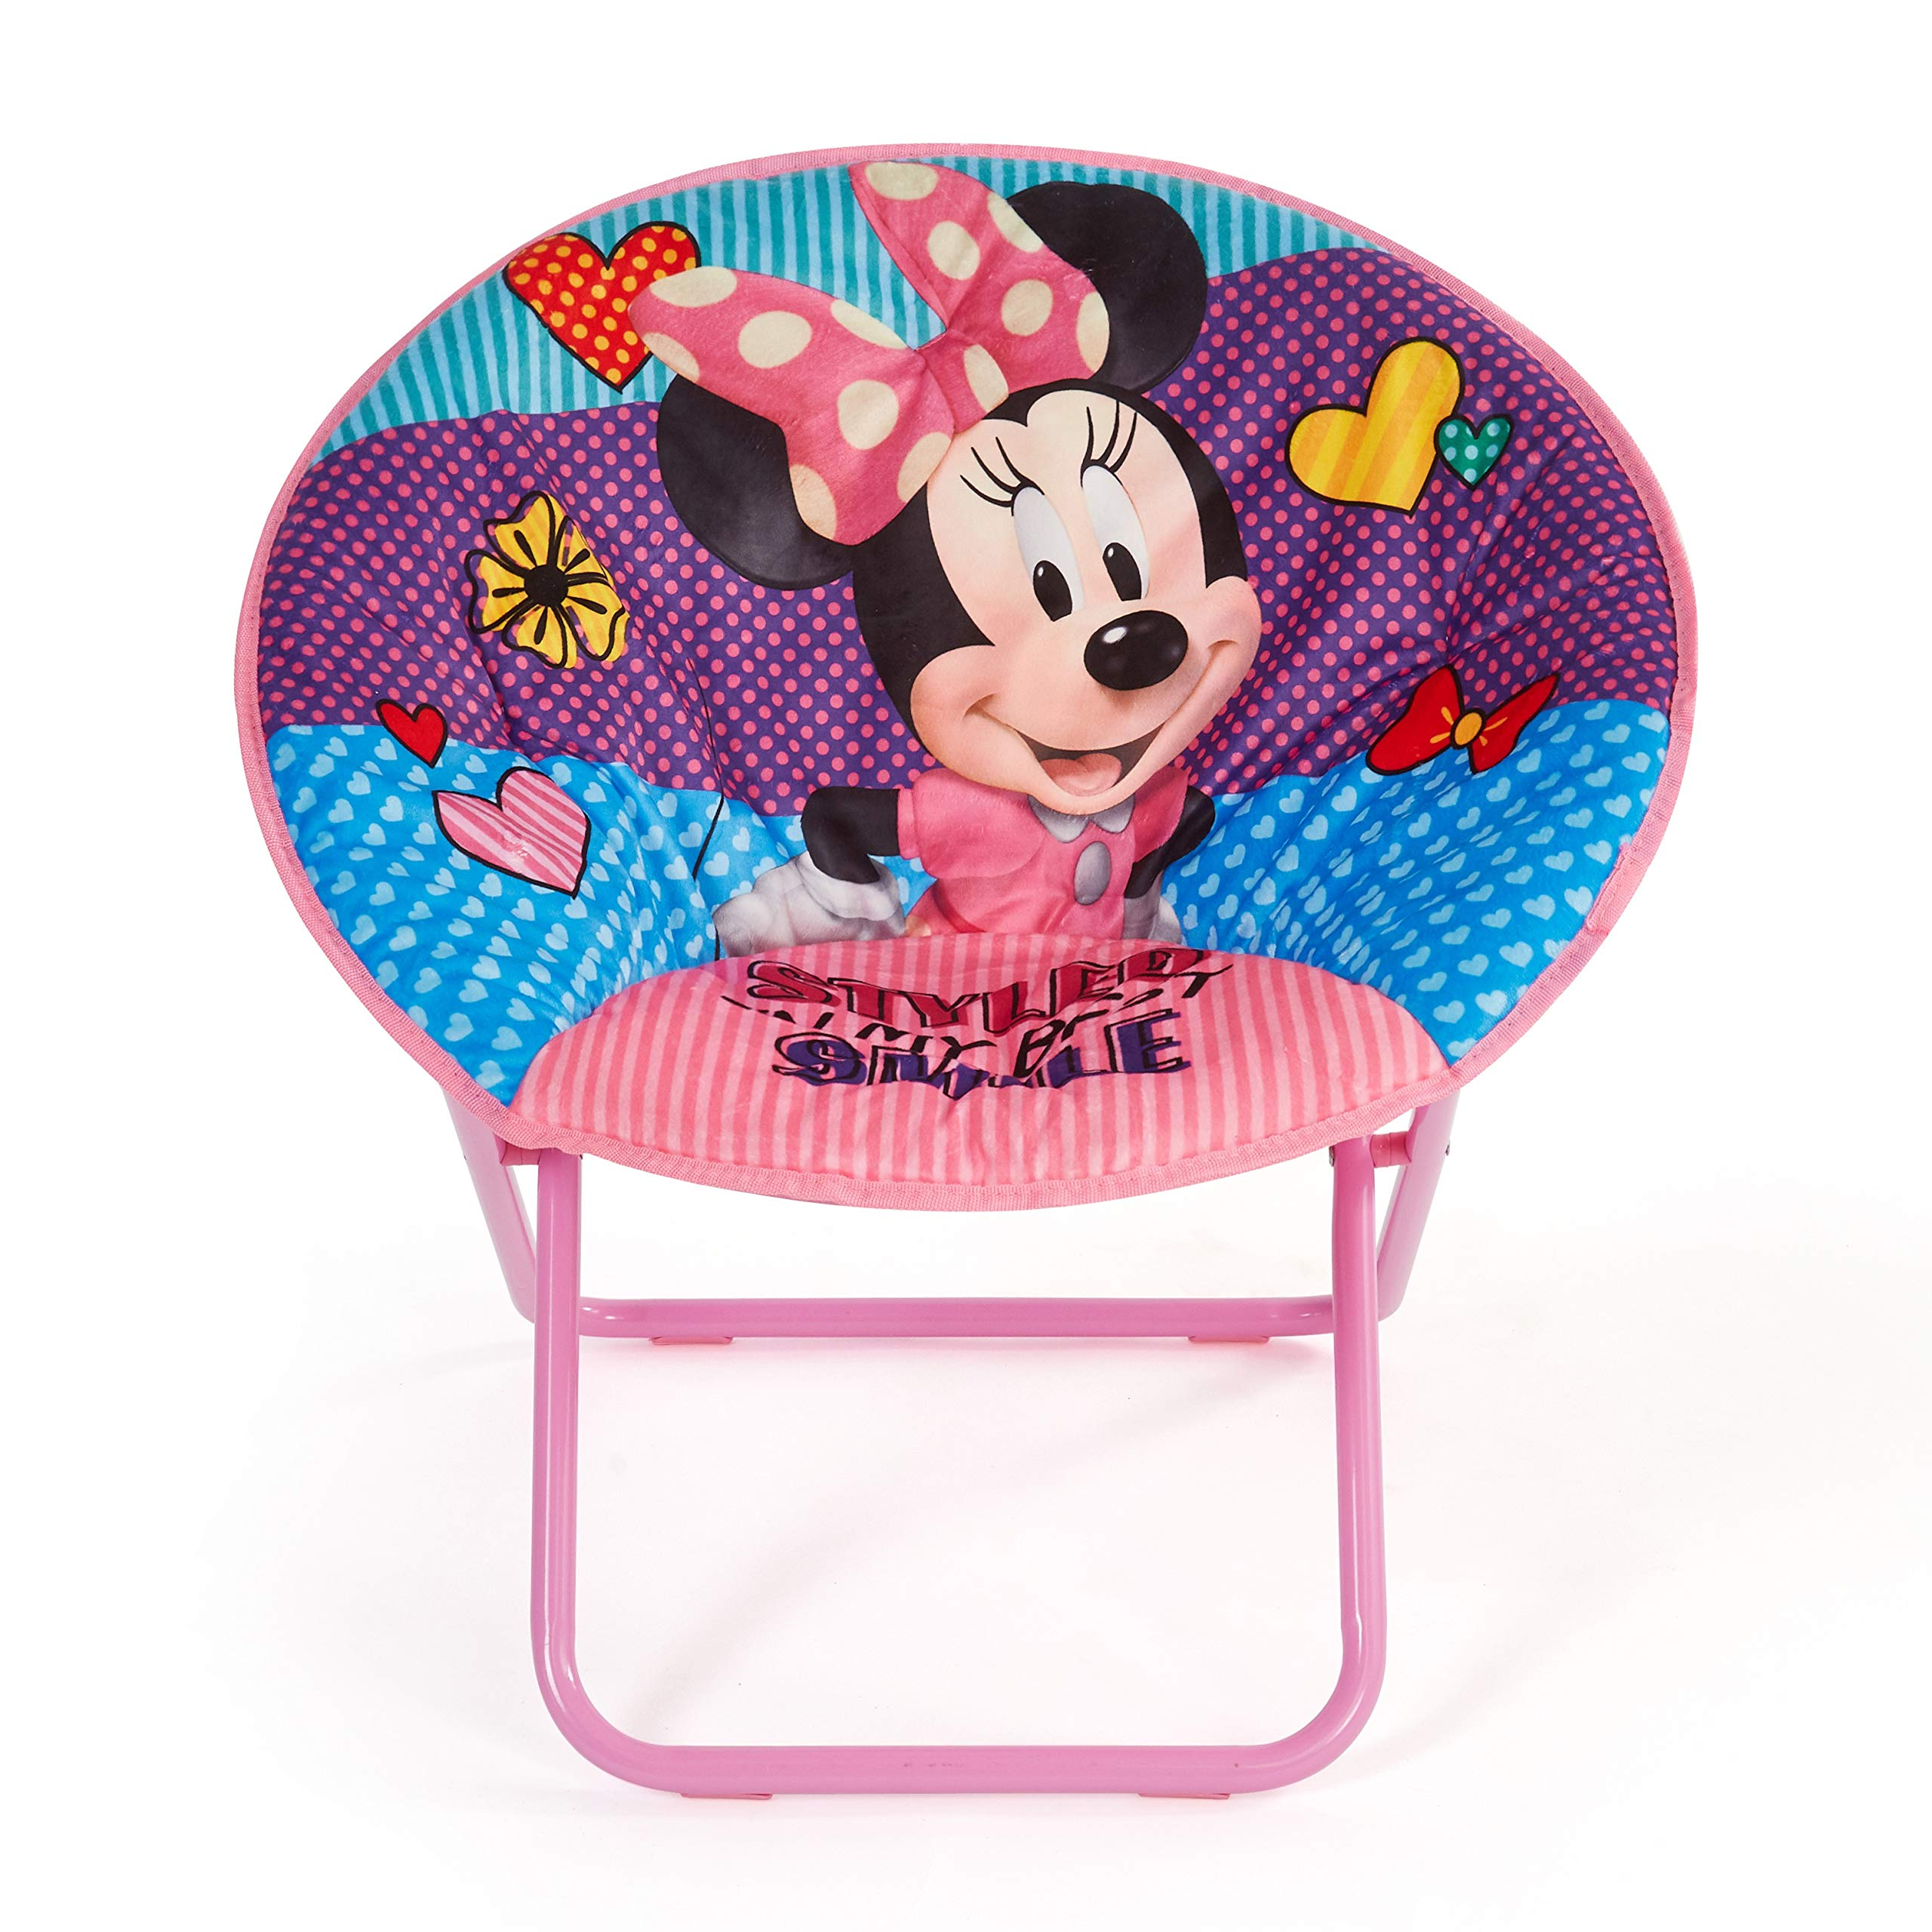 Disney Minnie Mouse 23'' Saucer Chair, Pink